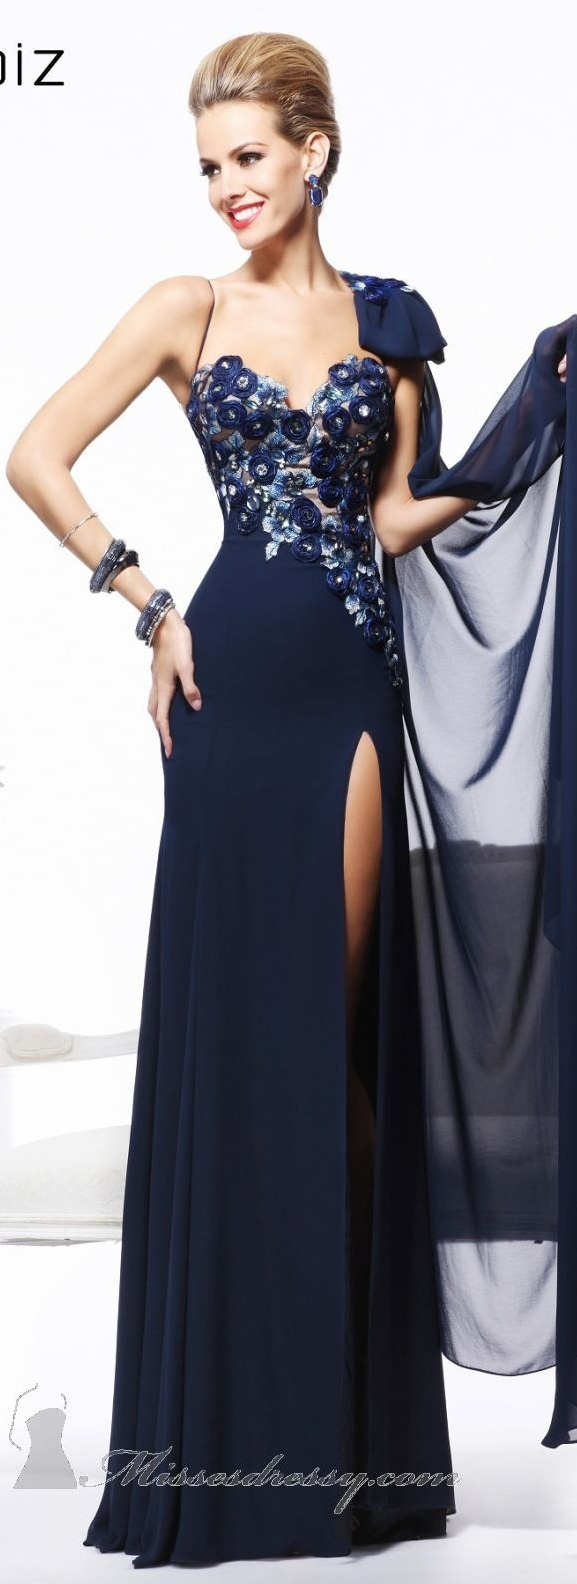 476 best Awesome night dresses images on Pinterest | Graduation ...